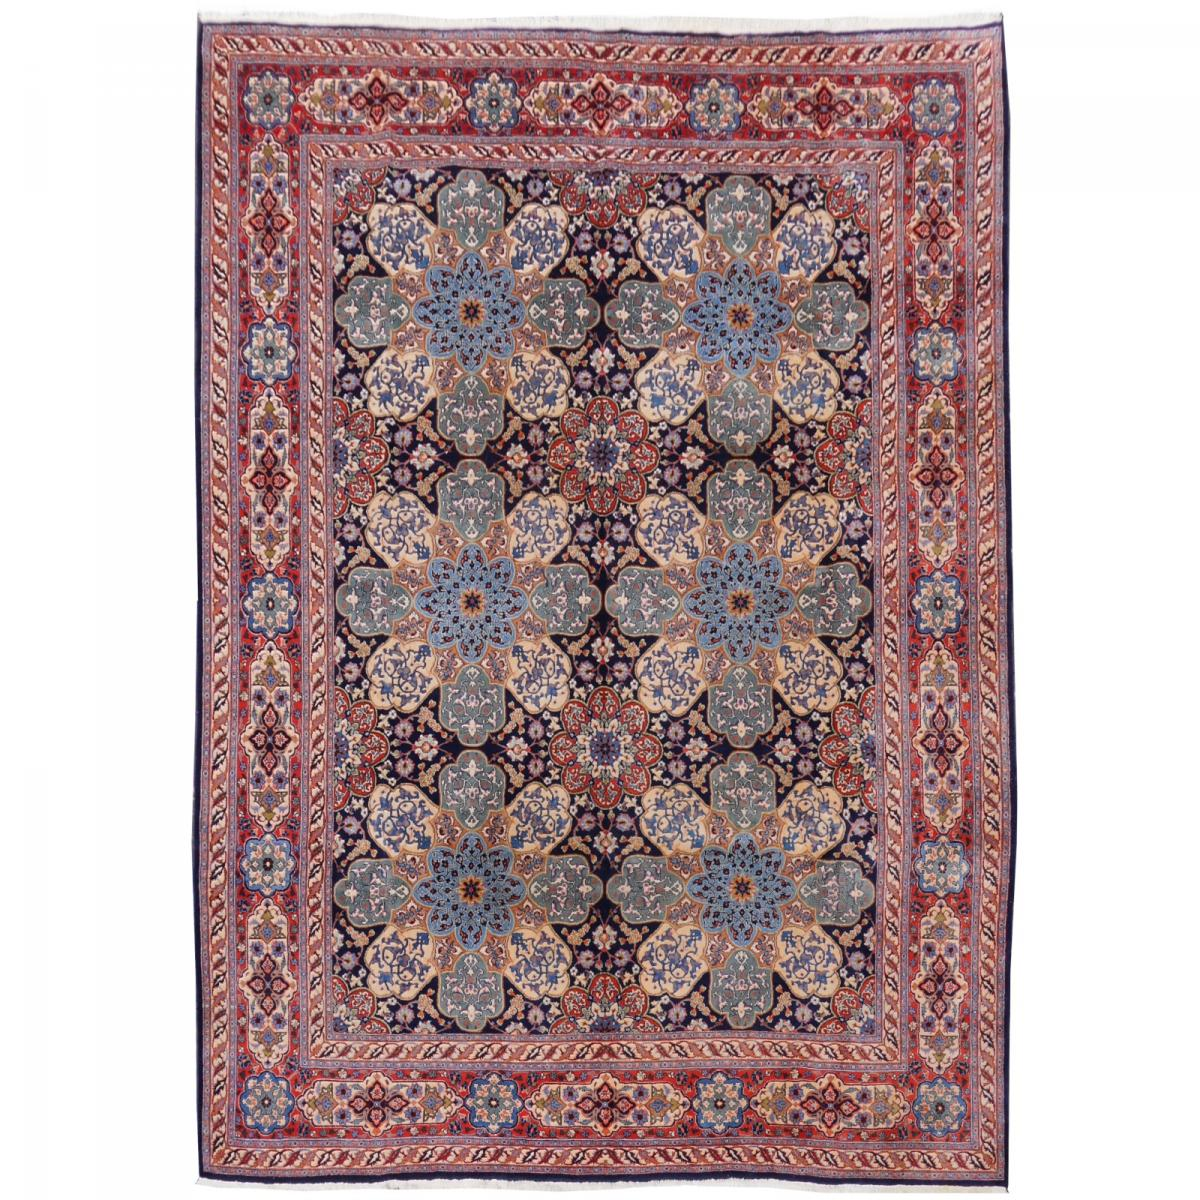 Persian Rug, Rug Cleaner. Rug Wash, Rugs cleaned sydney